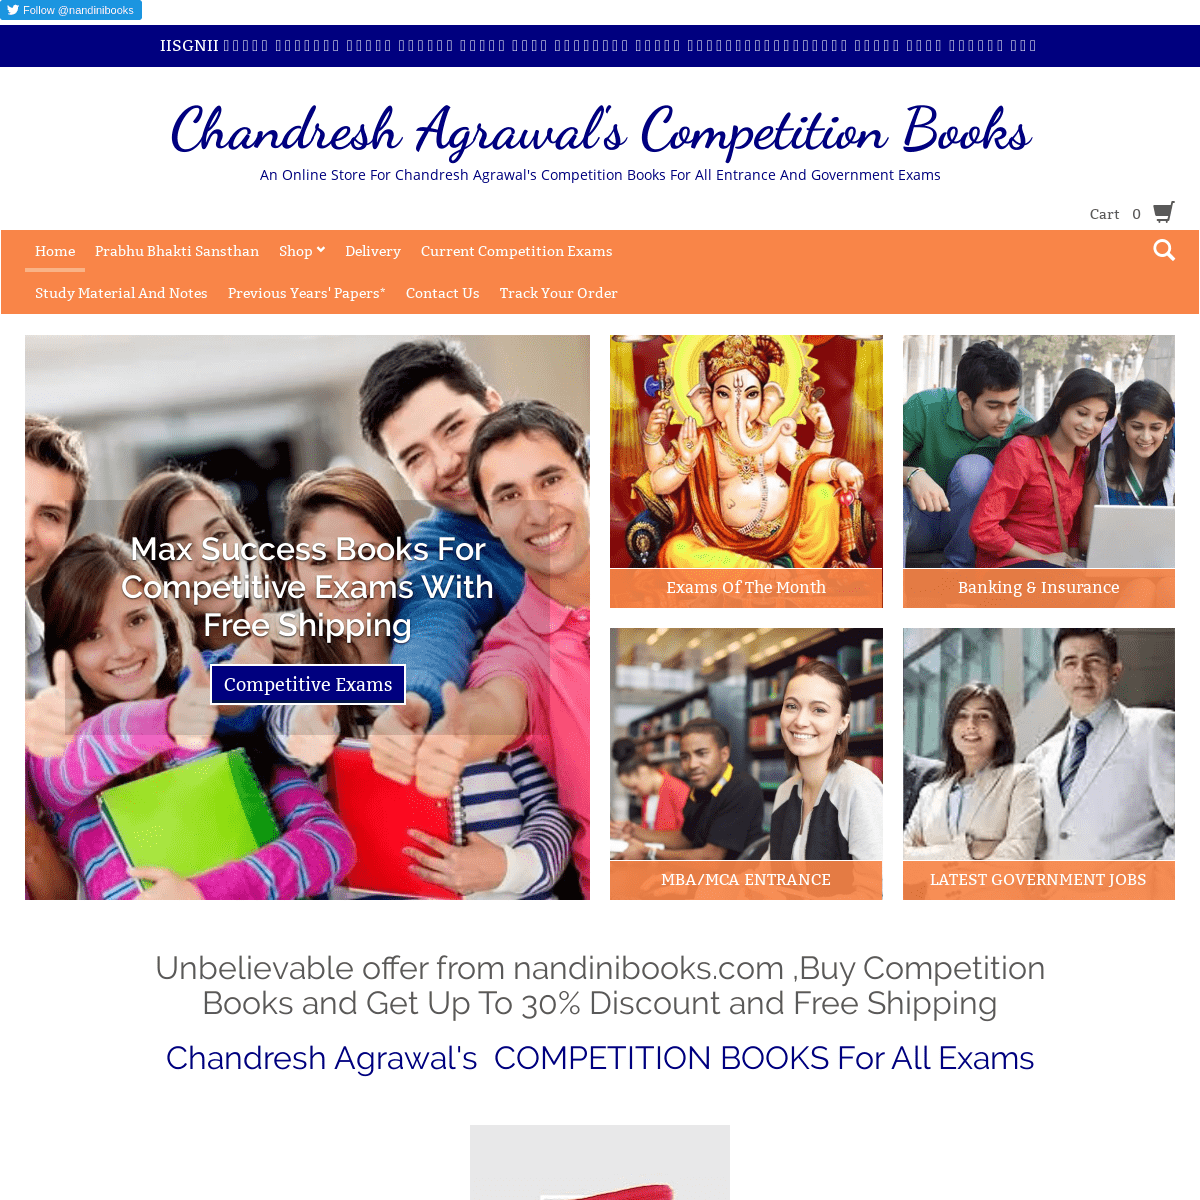 A Trusted Online Store For Chandresh Agrawal's Competition Books